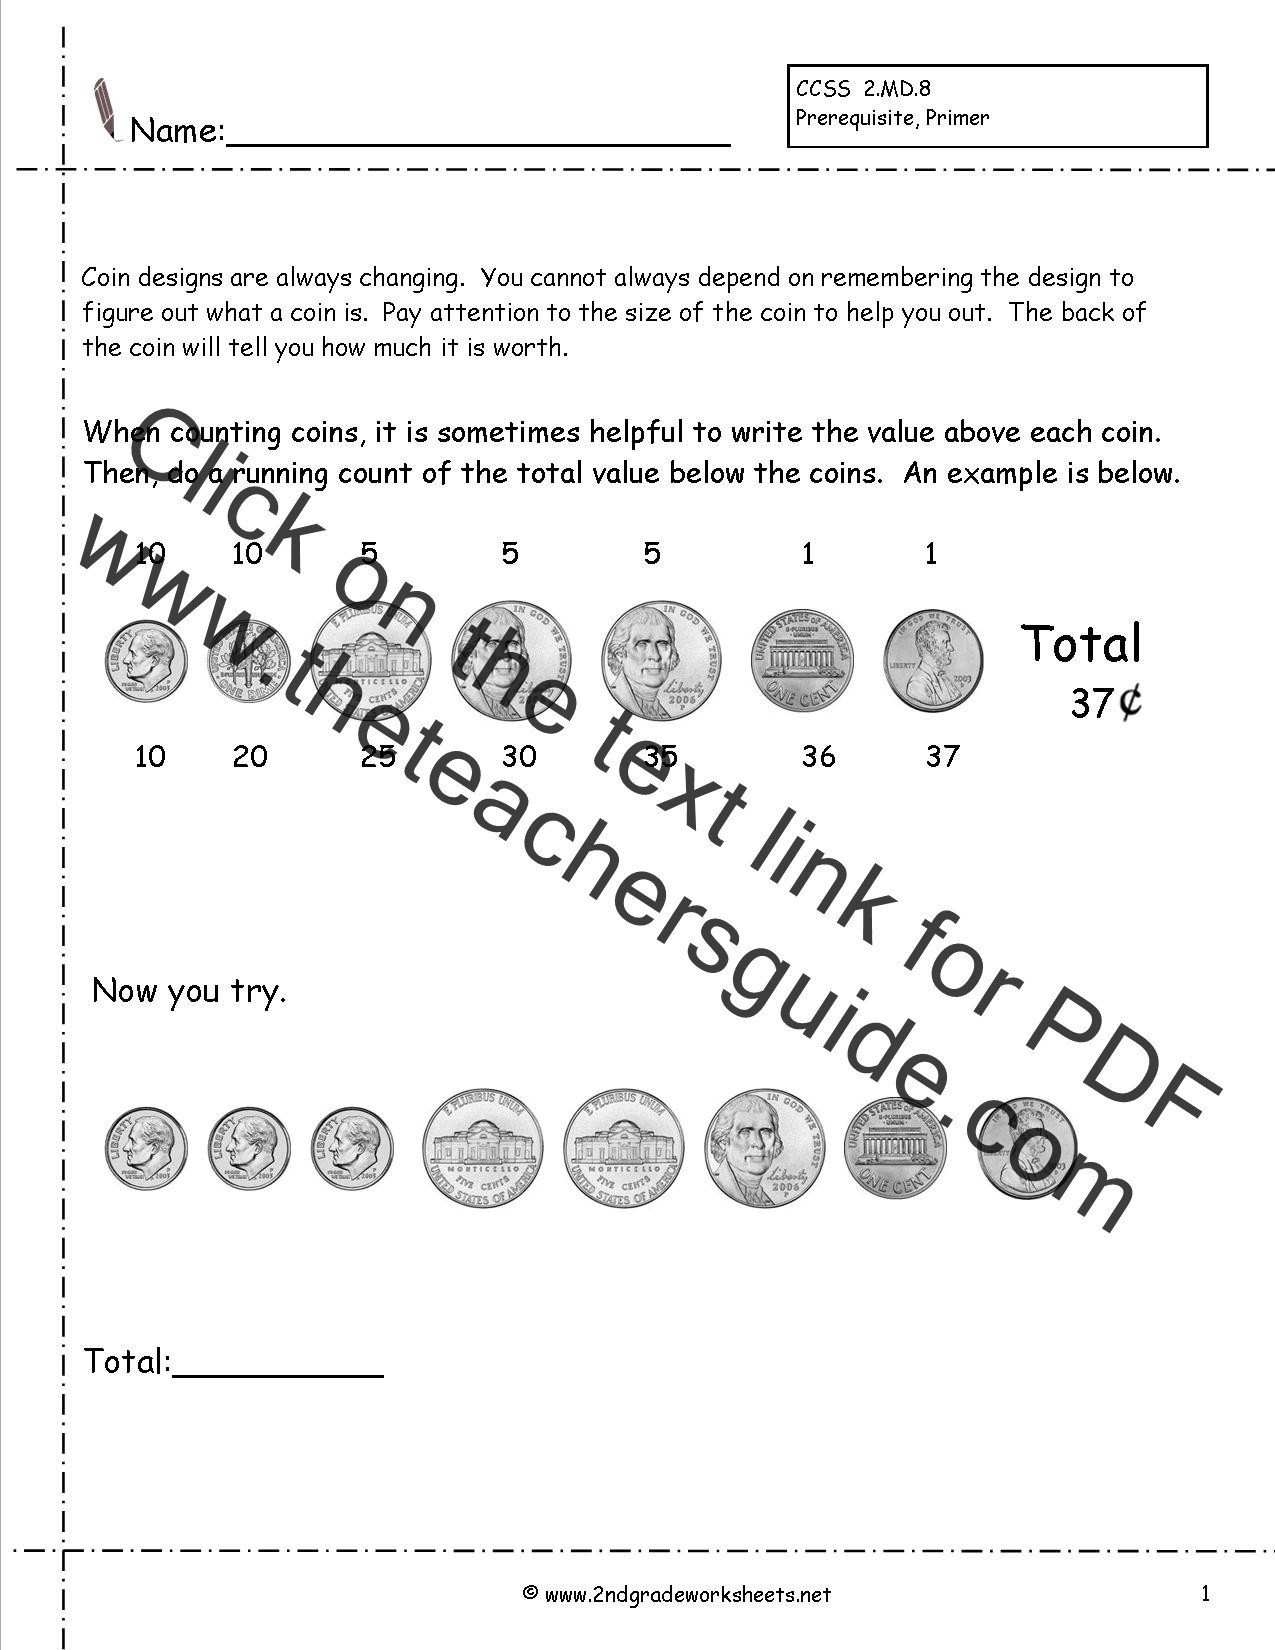 Free Counting Coins Worksheets Counting Coins and Money Worksheets and Printouts